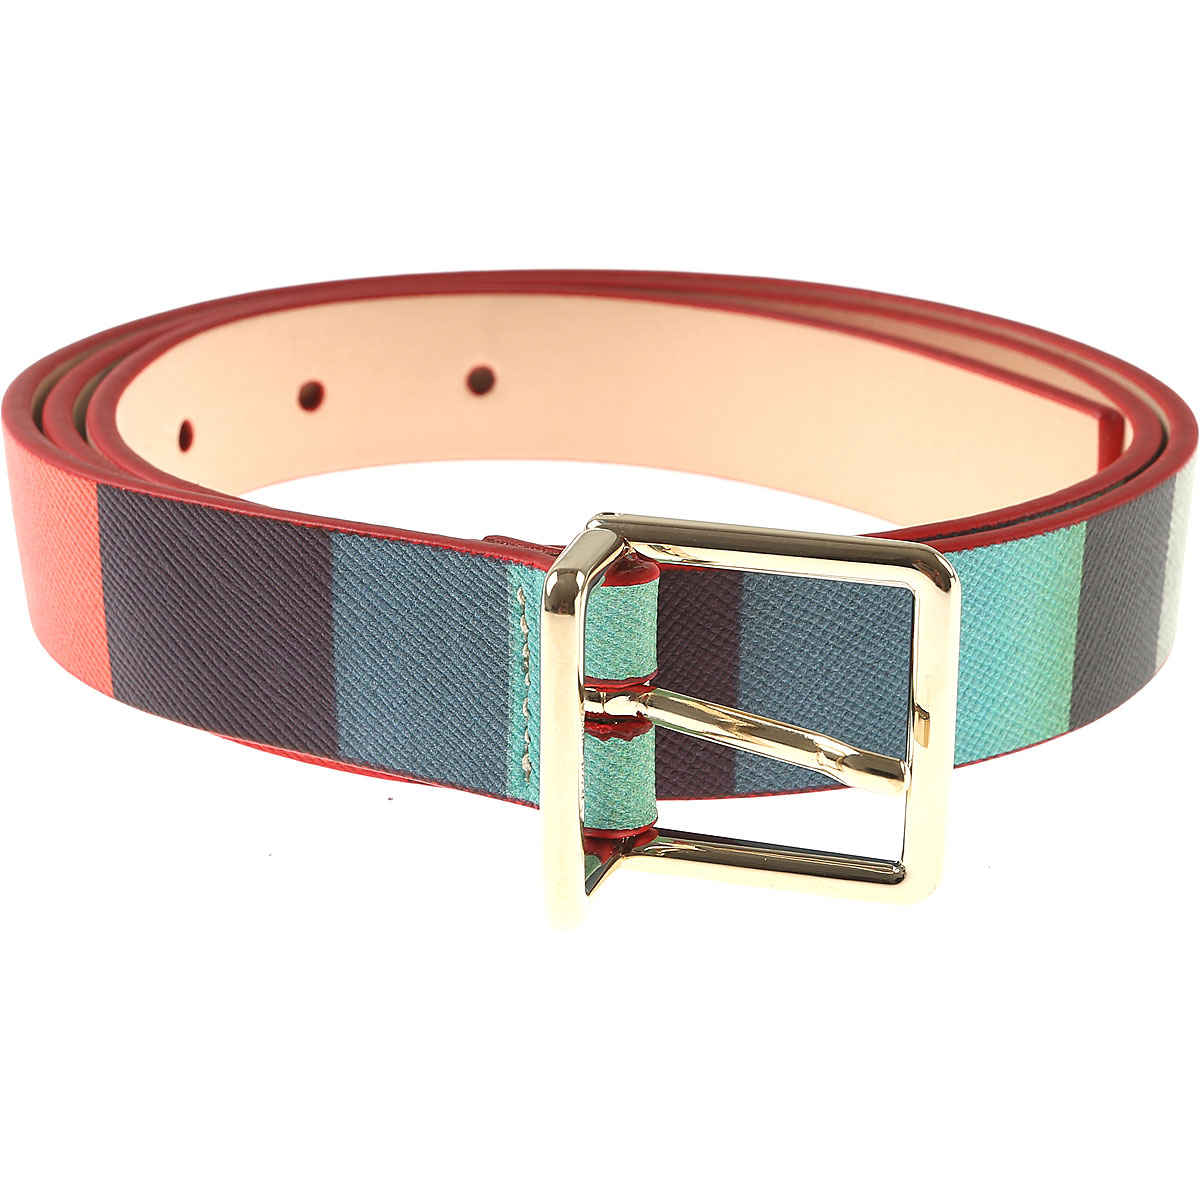 Paul Smith Womens Belts, Multicolor, Leather, 2017, 34 inches - 85 cm 36 inches - 90 cm 38 inches - 95 cm